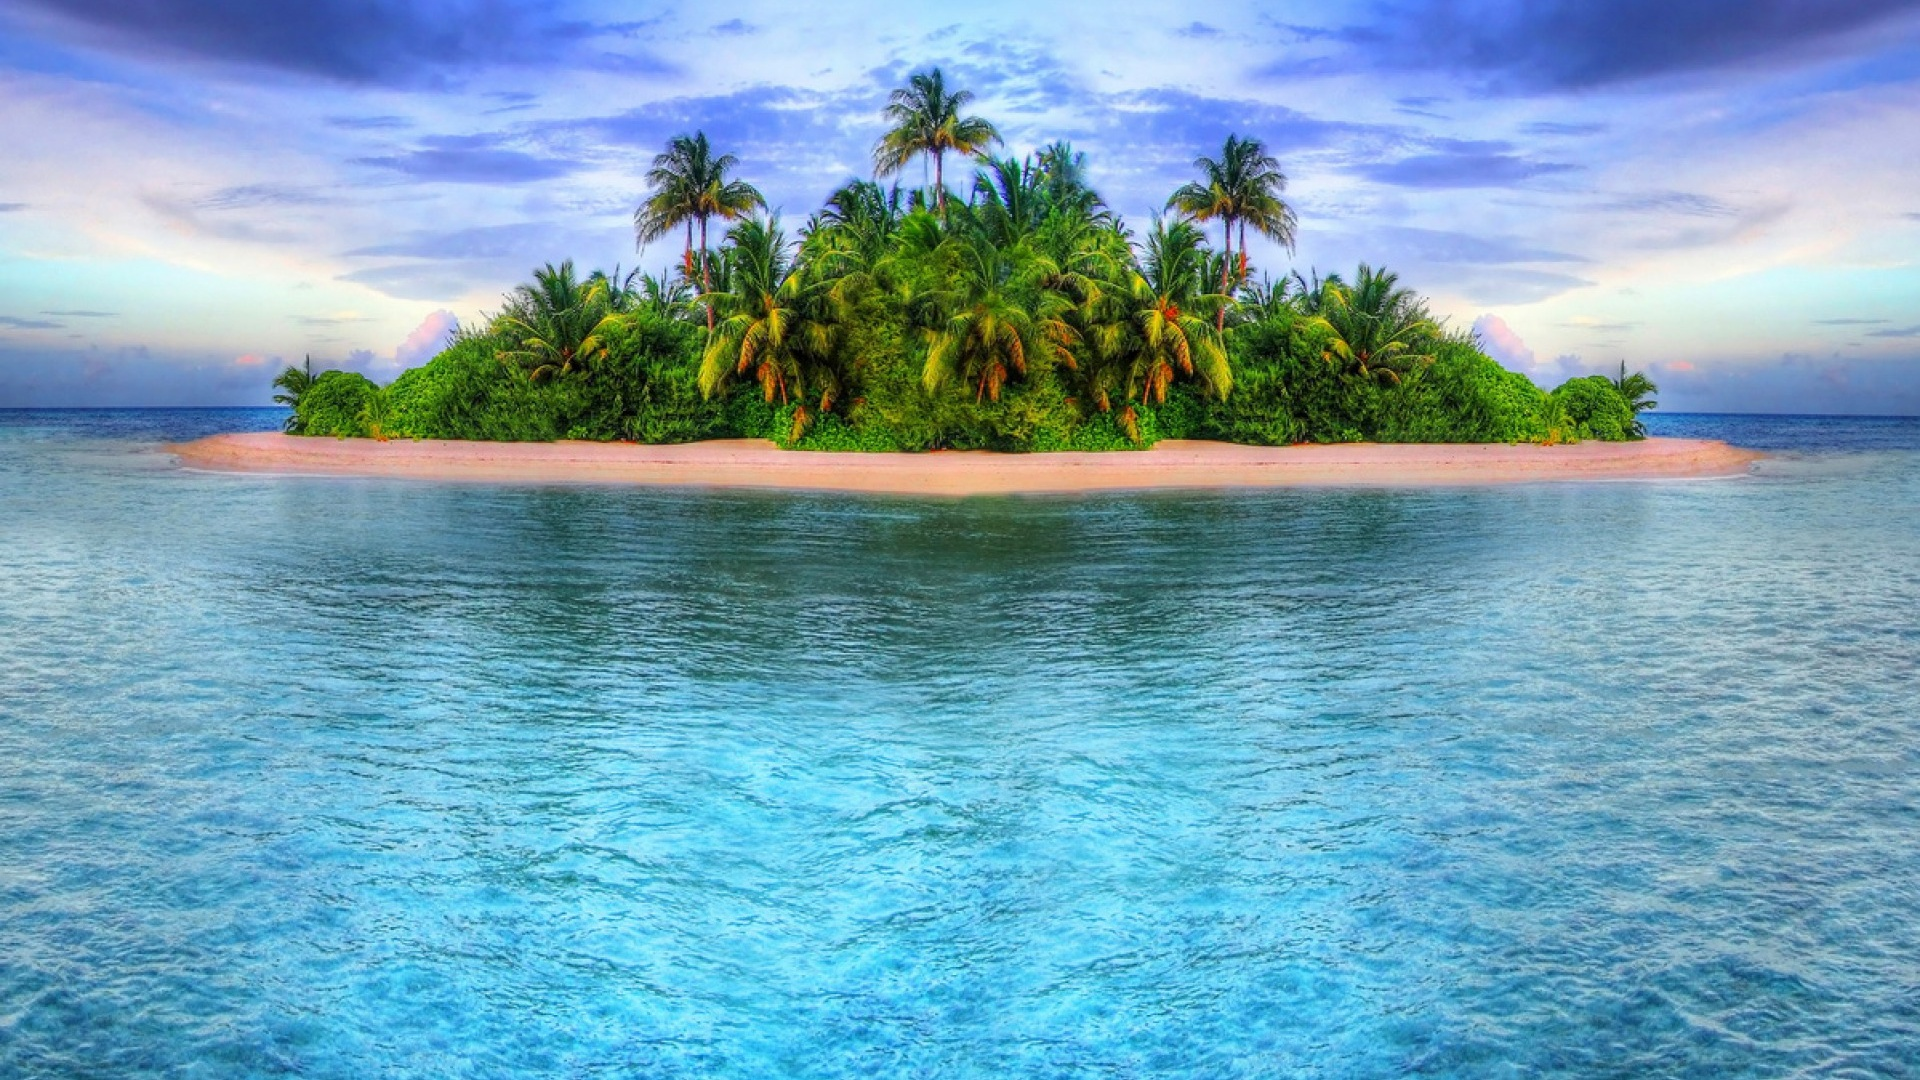 1920x1080 Tropical Island desktop PC and Mac wallpaper 1920x1080